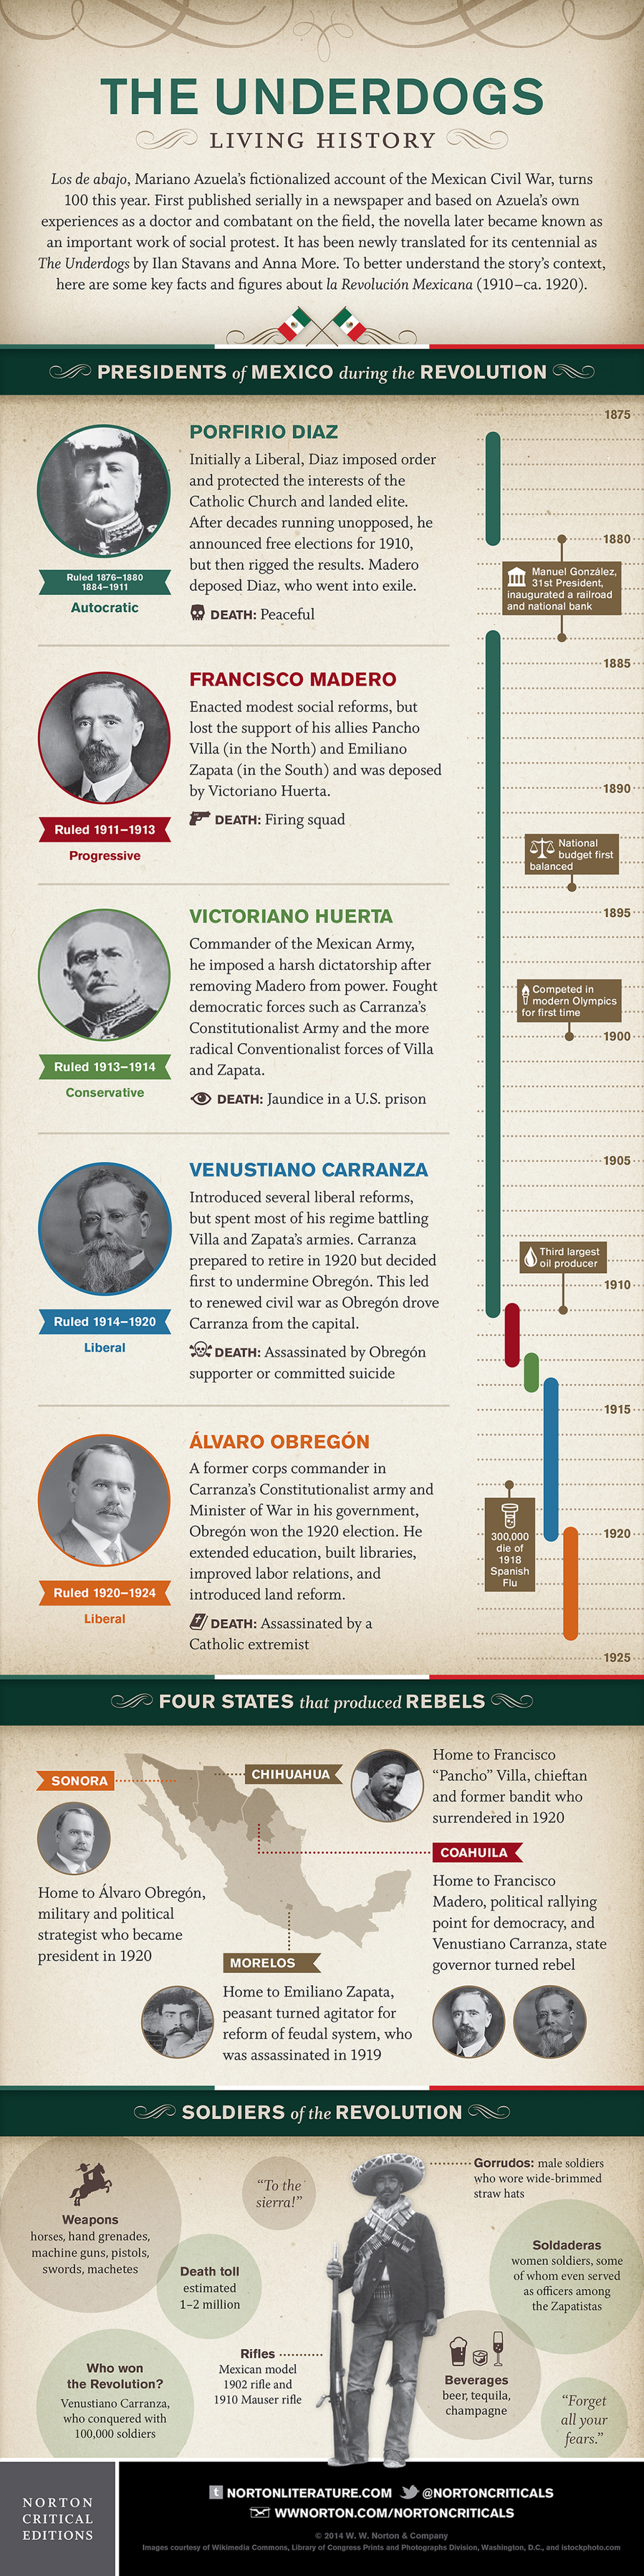 The Underdogs: Living History Infographic